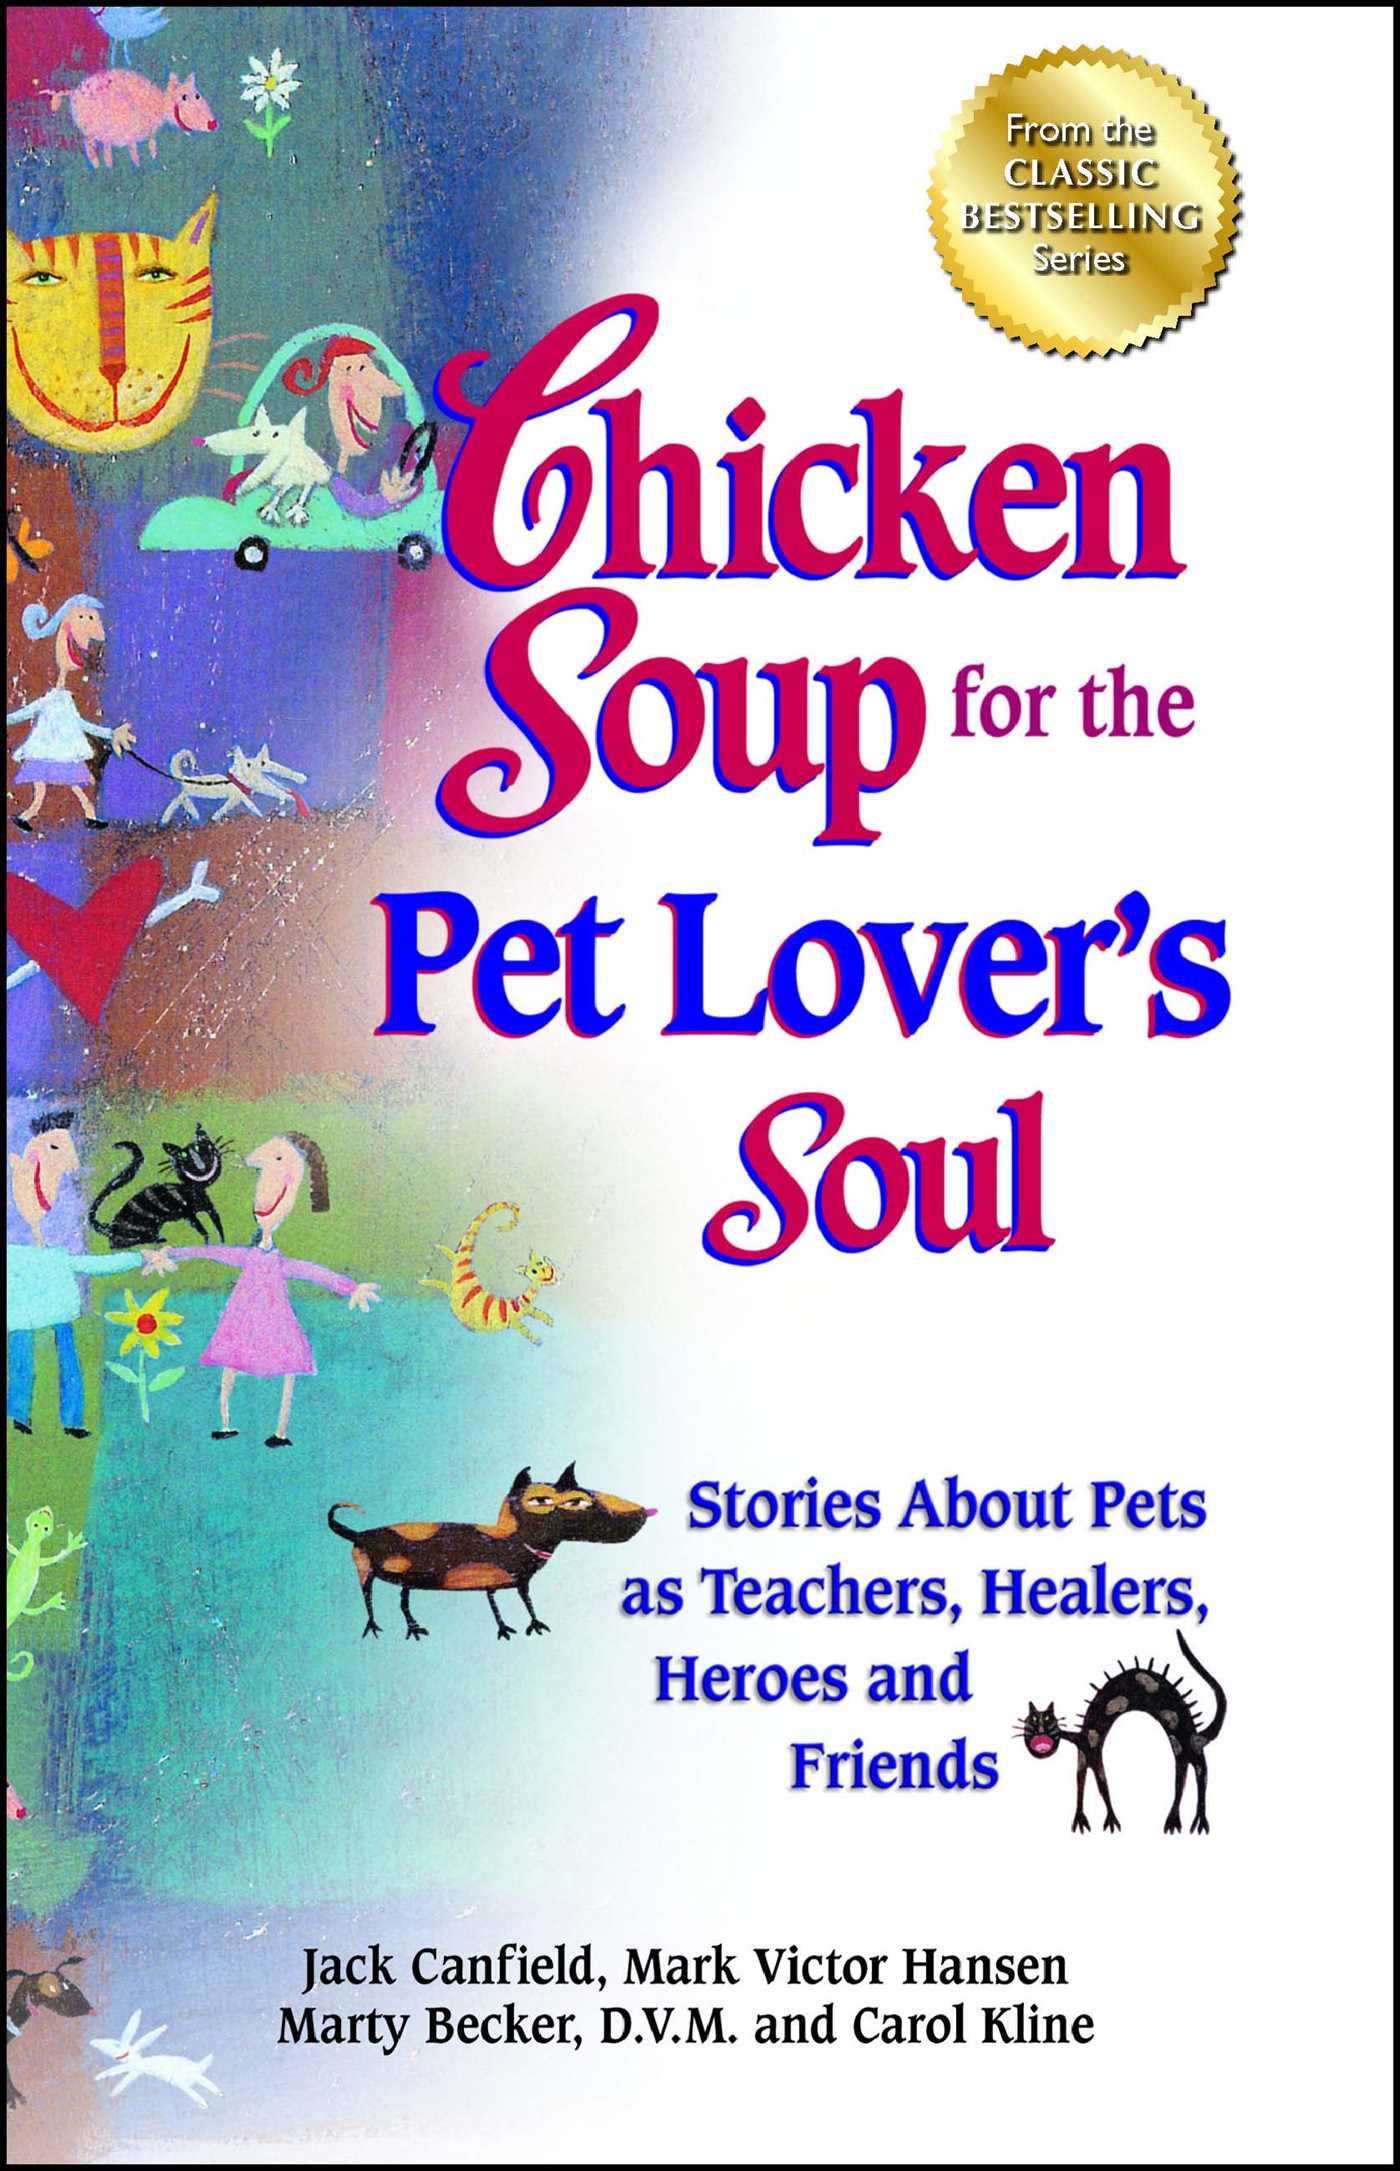 Chicken-soup-for-the-pet-lovers-soul-9781623610555_hr